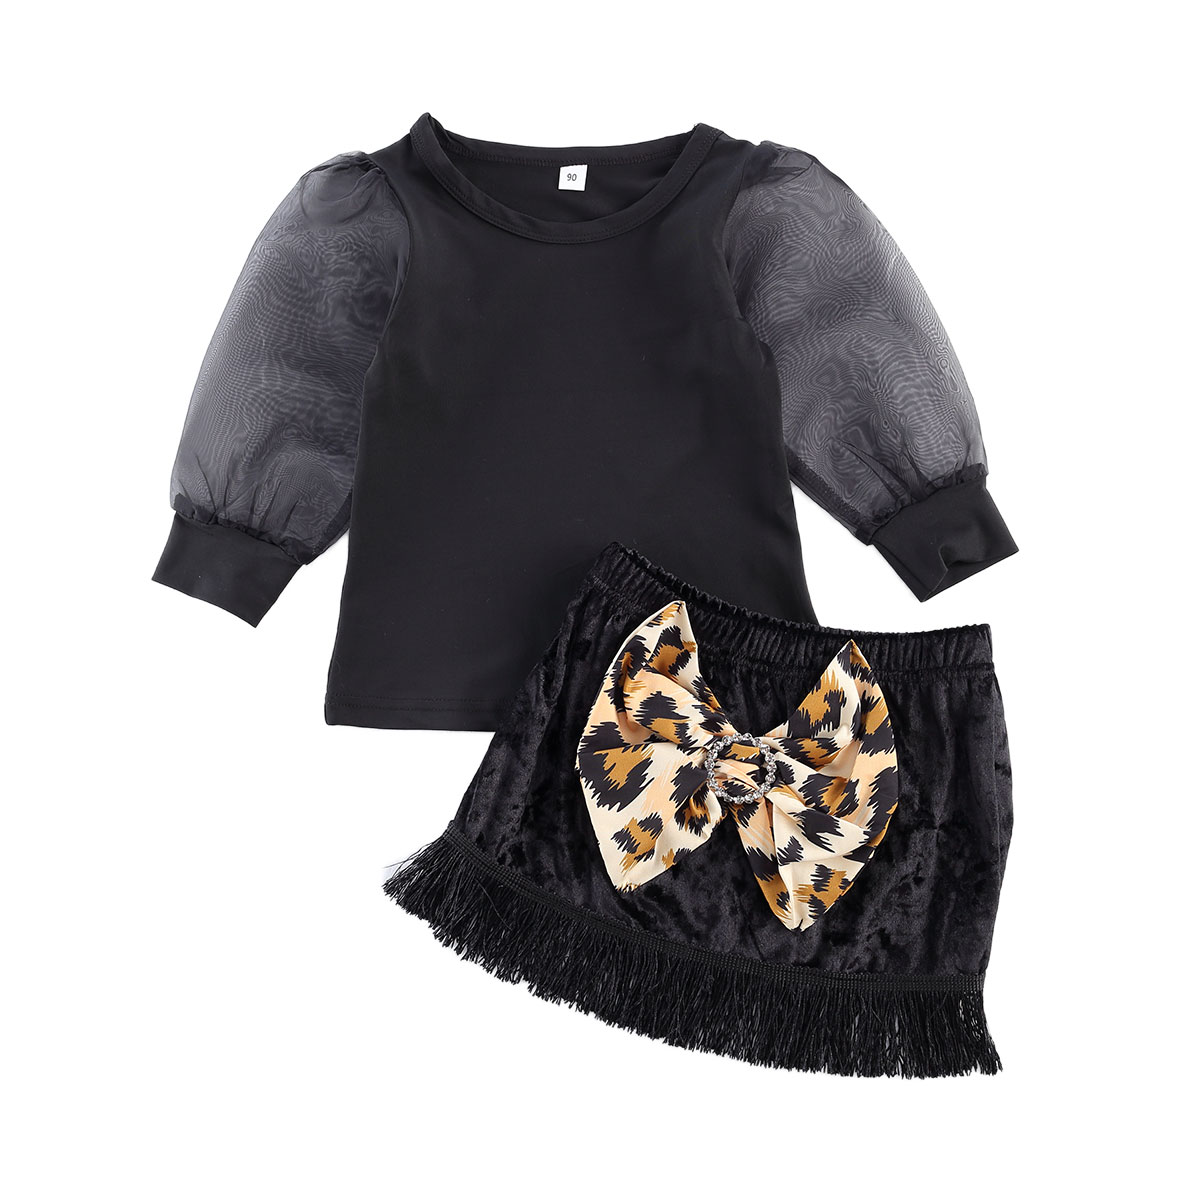 Toddler Kid Baby Girl Clothes Set Autumn Lace Long Sleeve Tops Bow Leopard Tassel Skirts Outfit Children